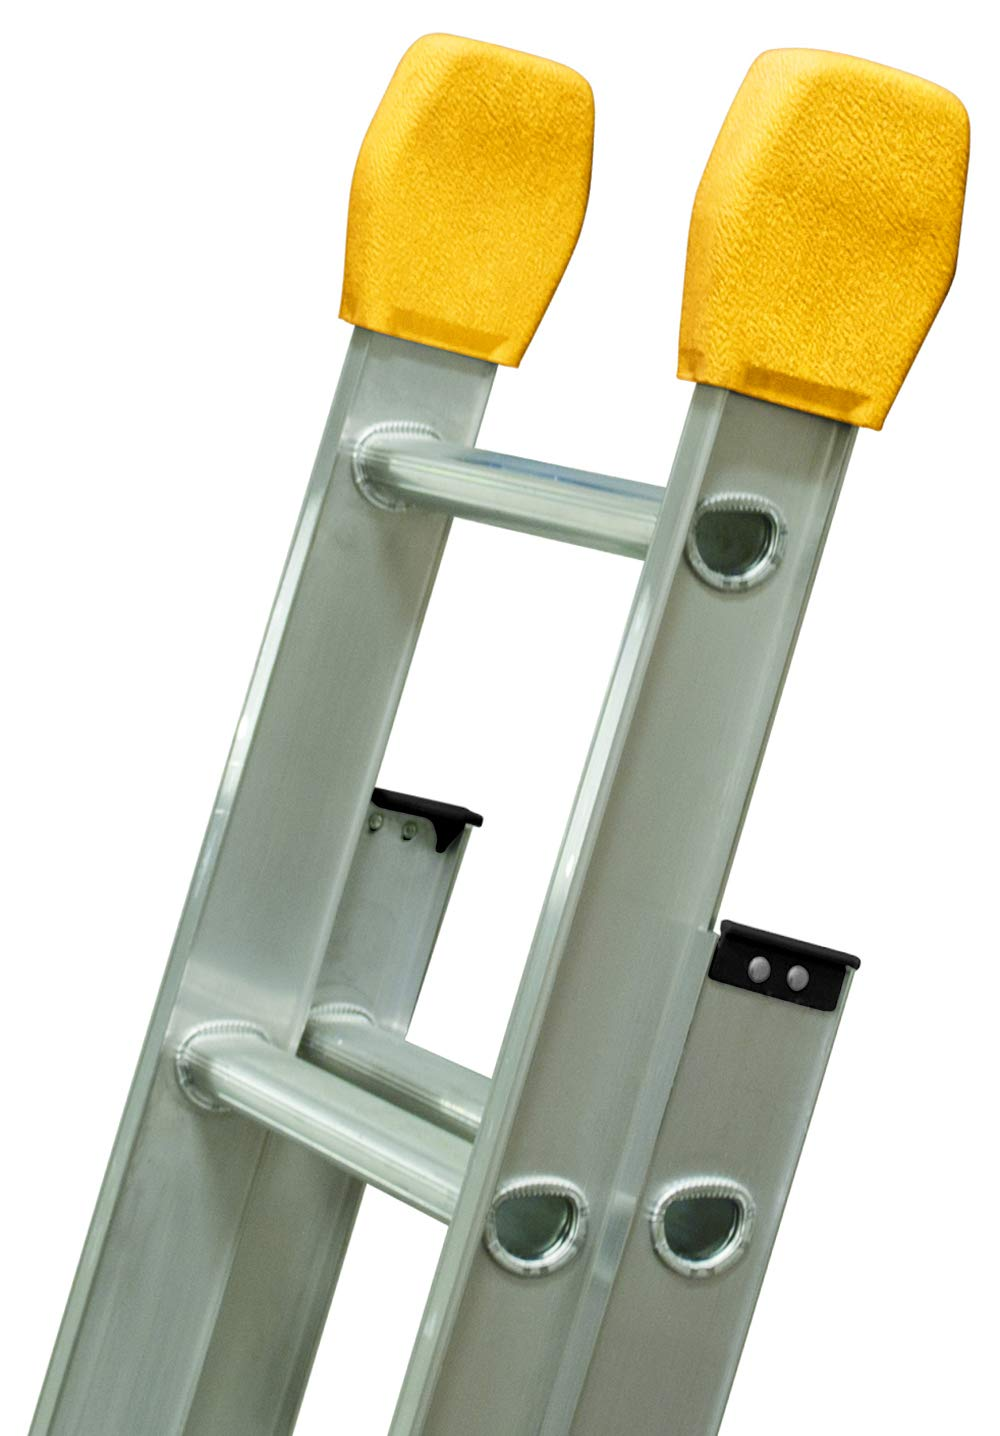 Louisville Ladder LP-5510-00 Ladder Pro Series Extension Pro-Guards/Ladder Covers